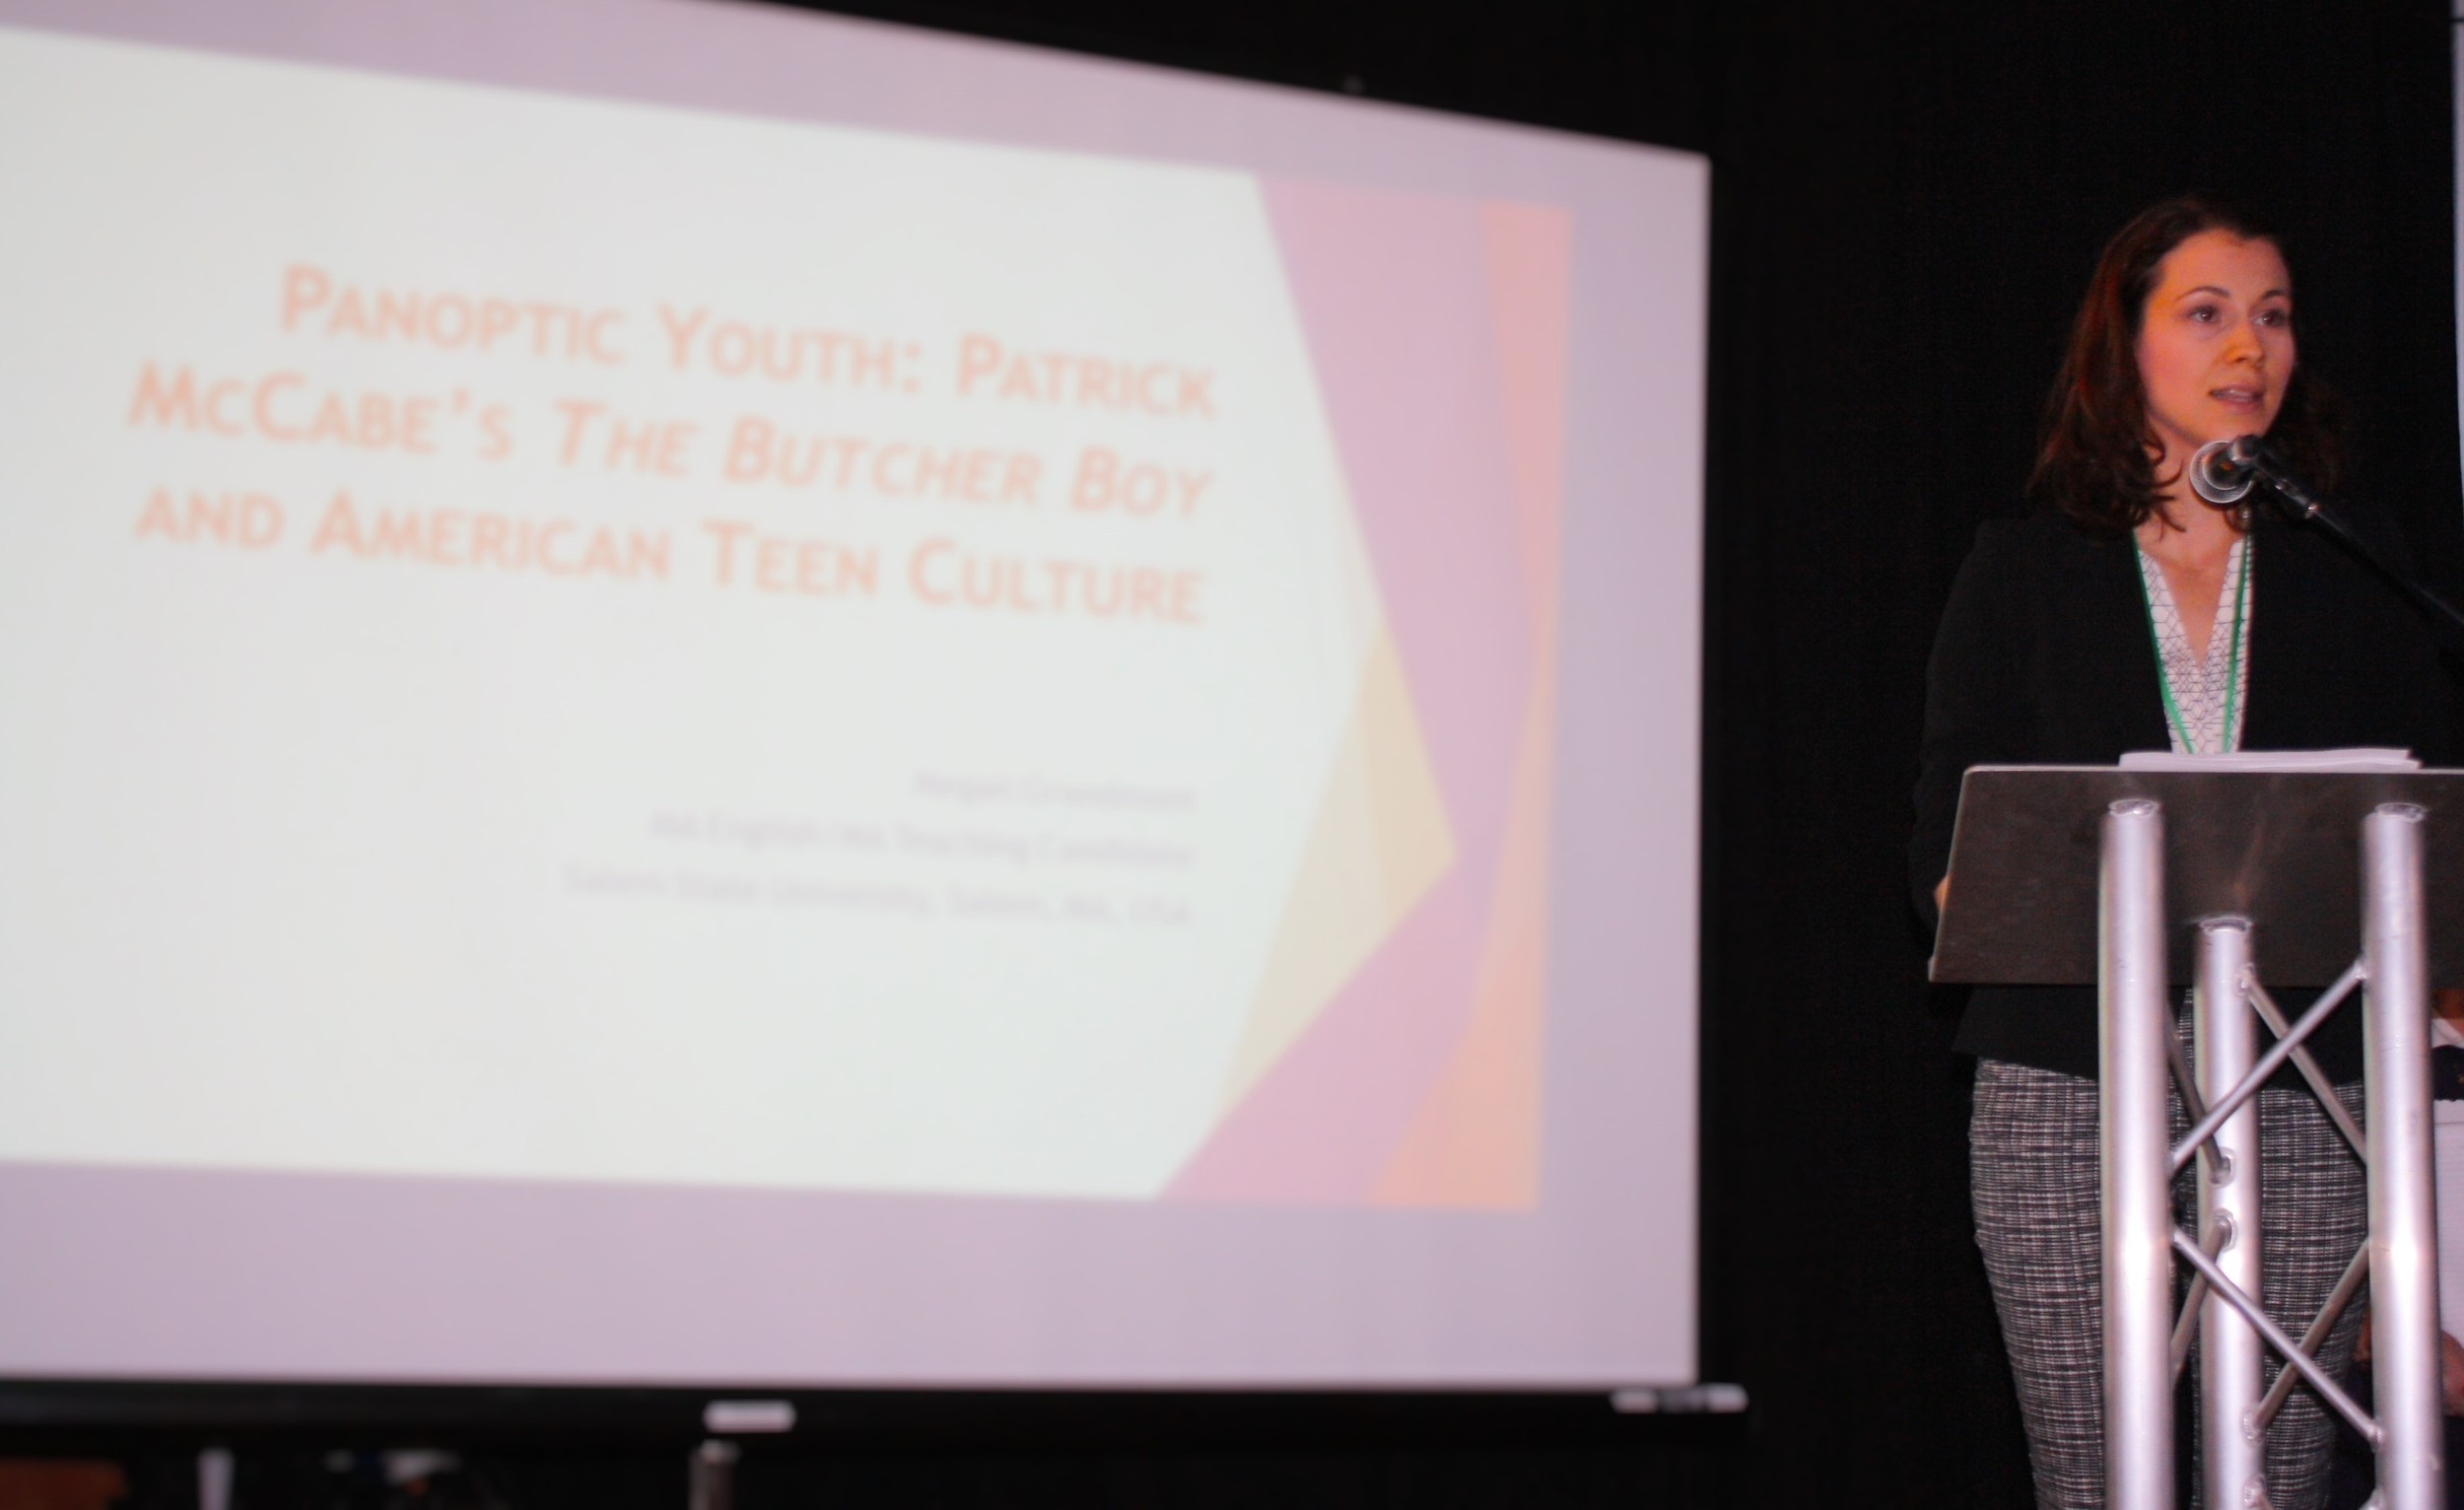 "Presenting my paper, ""Panoptic Youth: Patrick McCabe's  The Butcher Boy  and American Teen Culture,"" at the second annual Transatlantic Connections Conference in Bundoran, County Donegal, Ireland, in January 2015. Photo Credit: Anne Mooney"